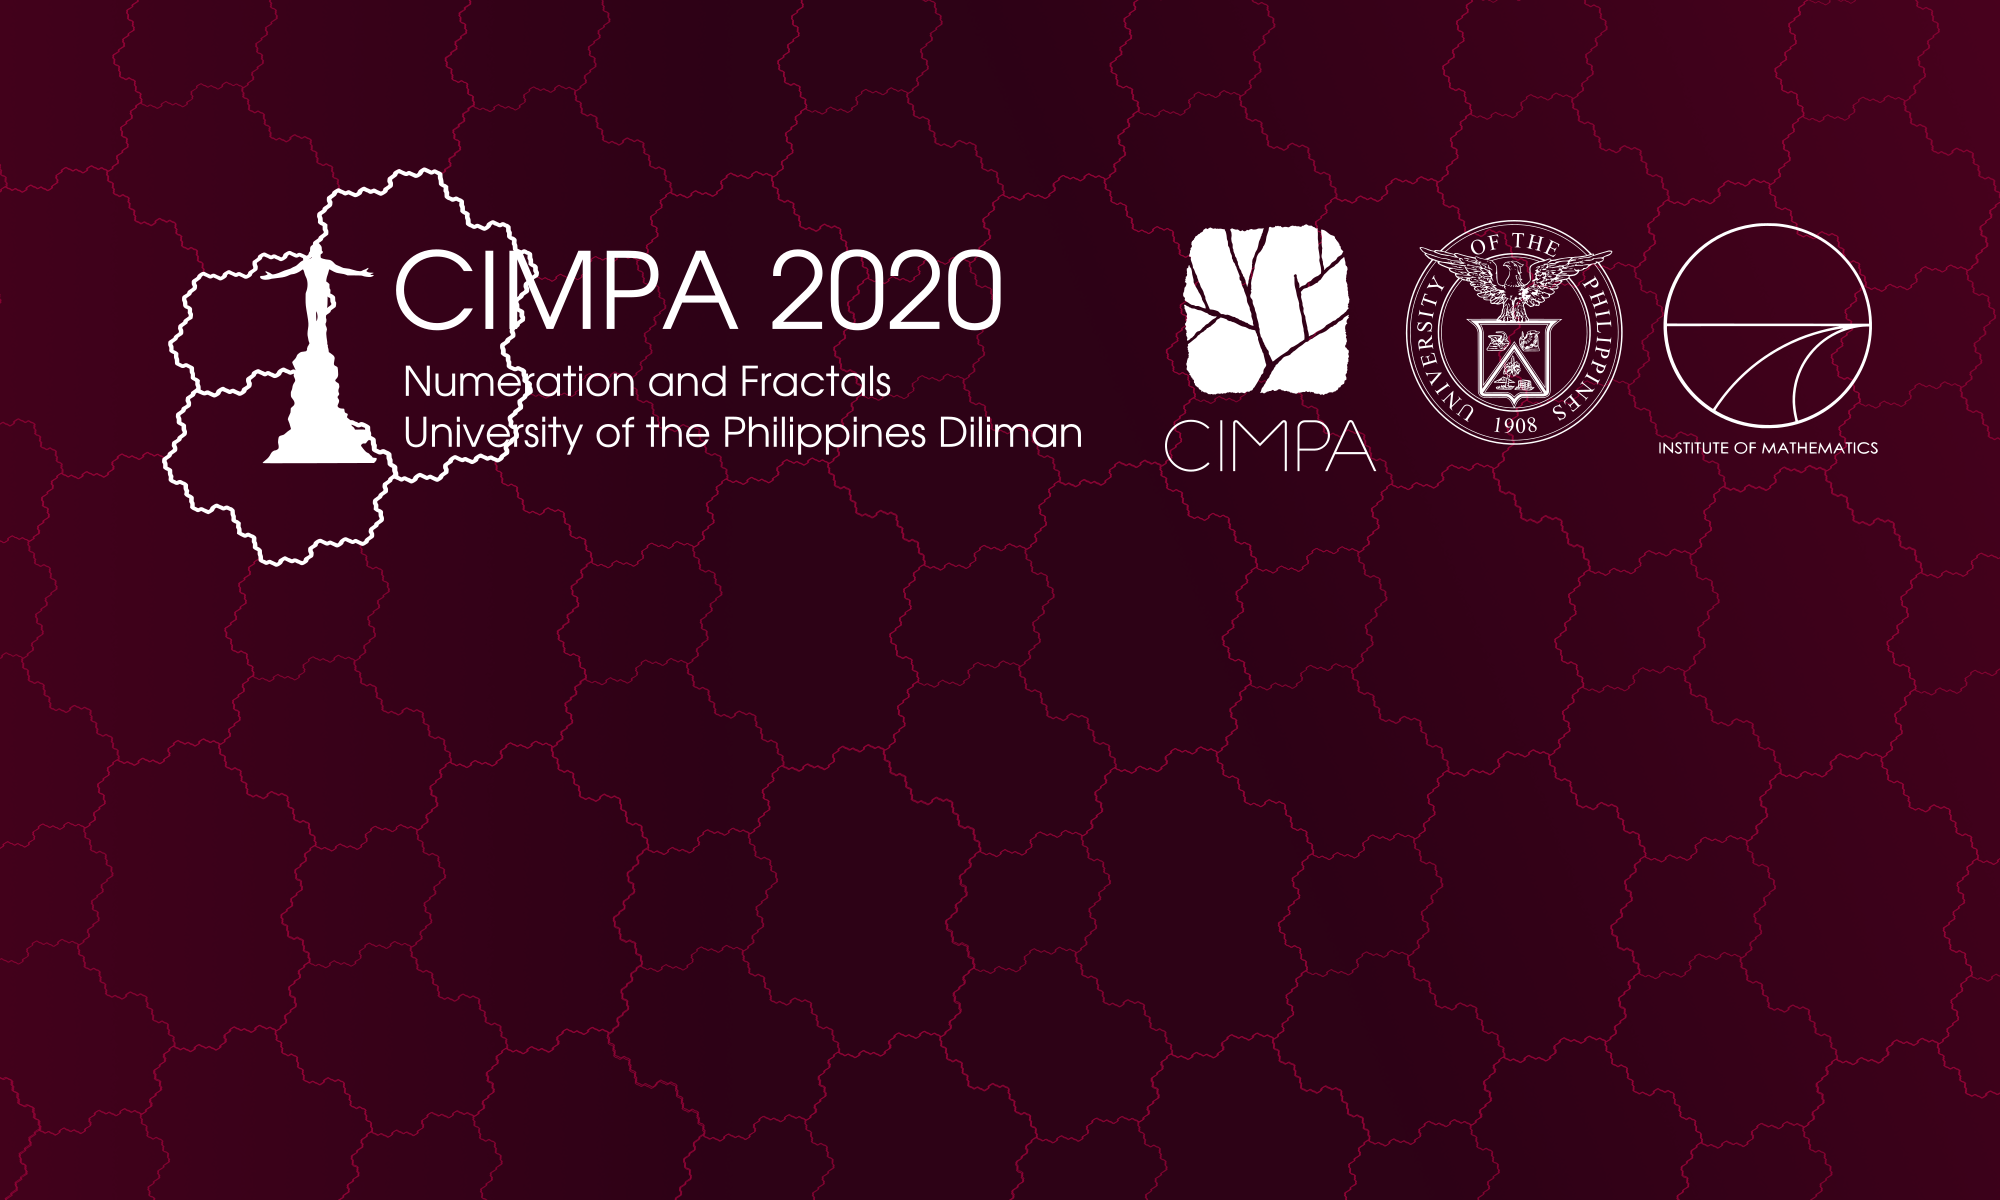 CIMPA Research School on Numeration and Fractals 2020